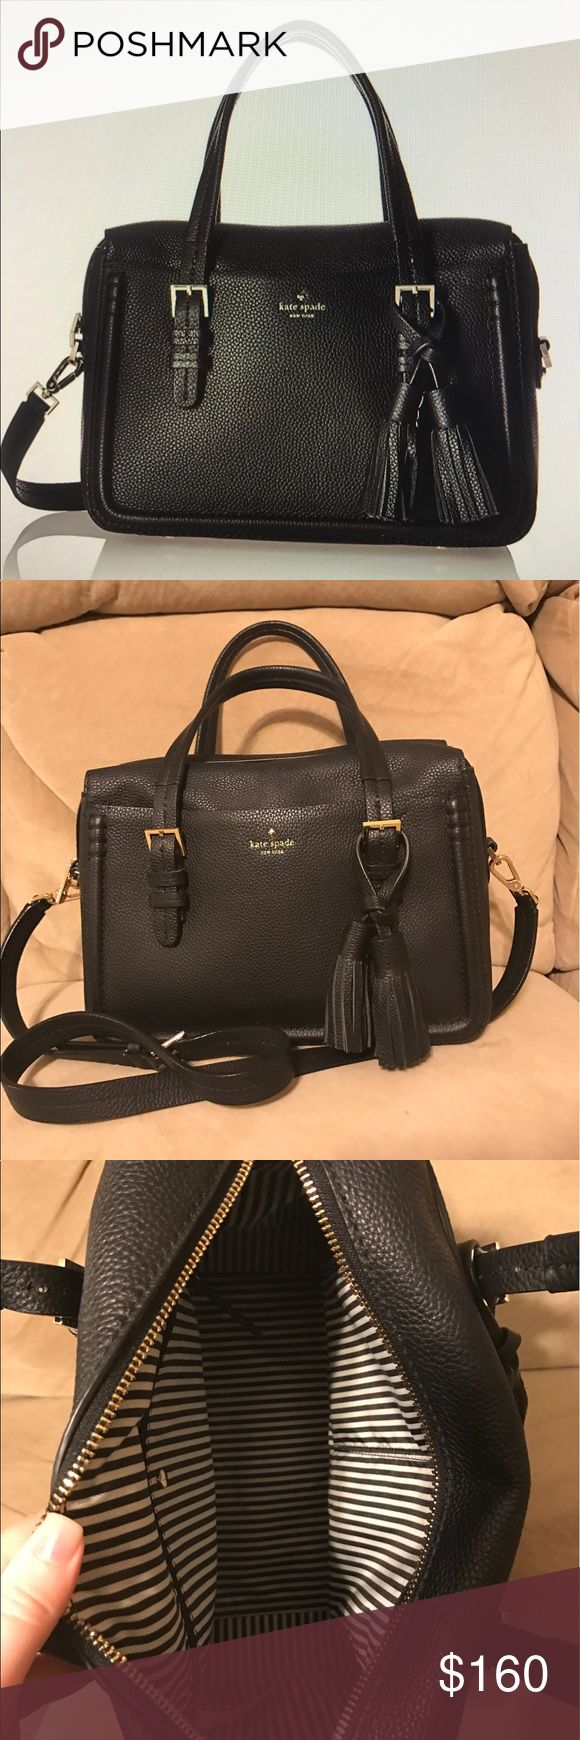 Kate Spade black pebbled leather bag Only used for a short time. Very good condition. I couldn't find any stains or anything. Good size with lots of room. kate spade Bags Crossbody Bags